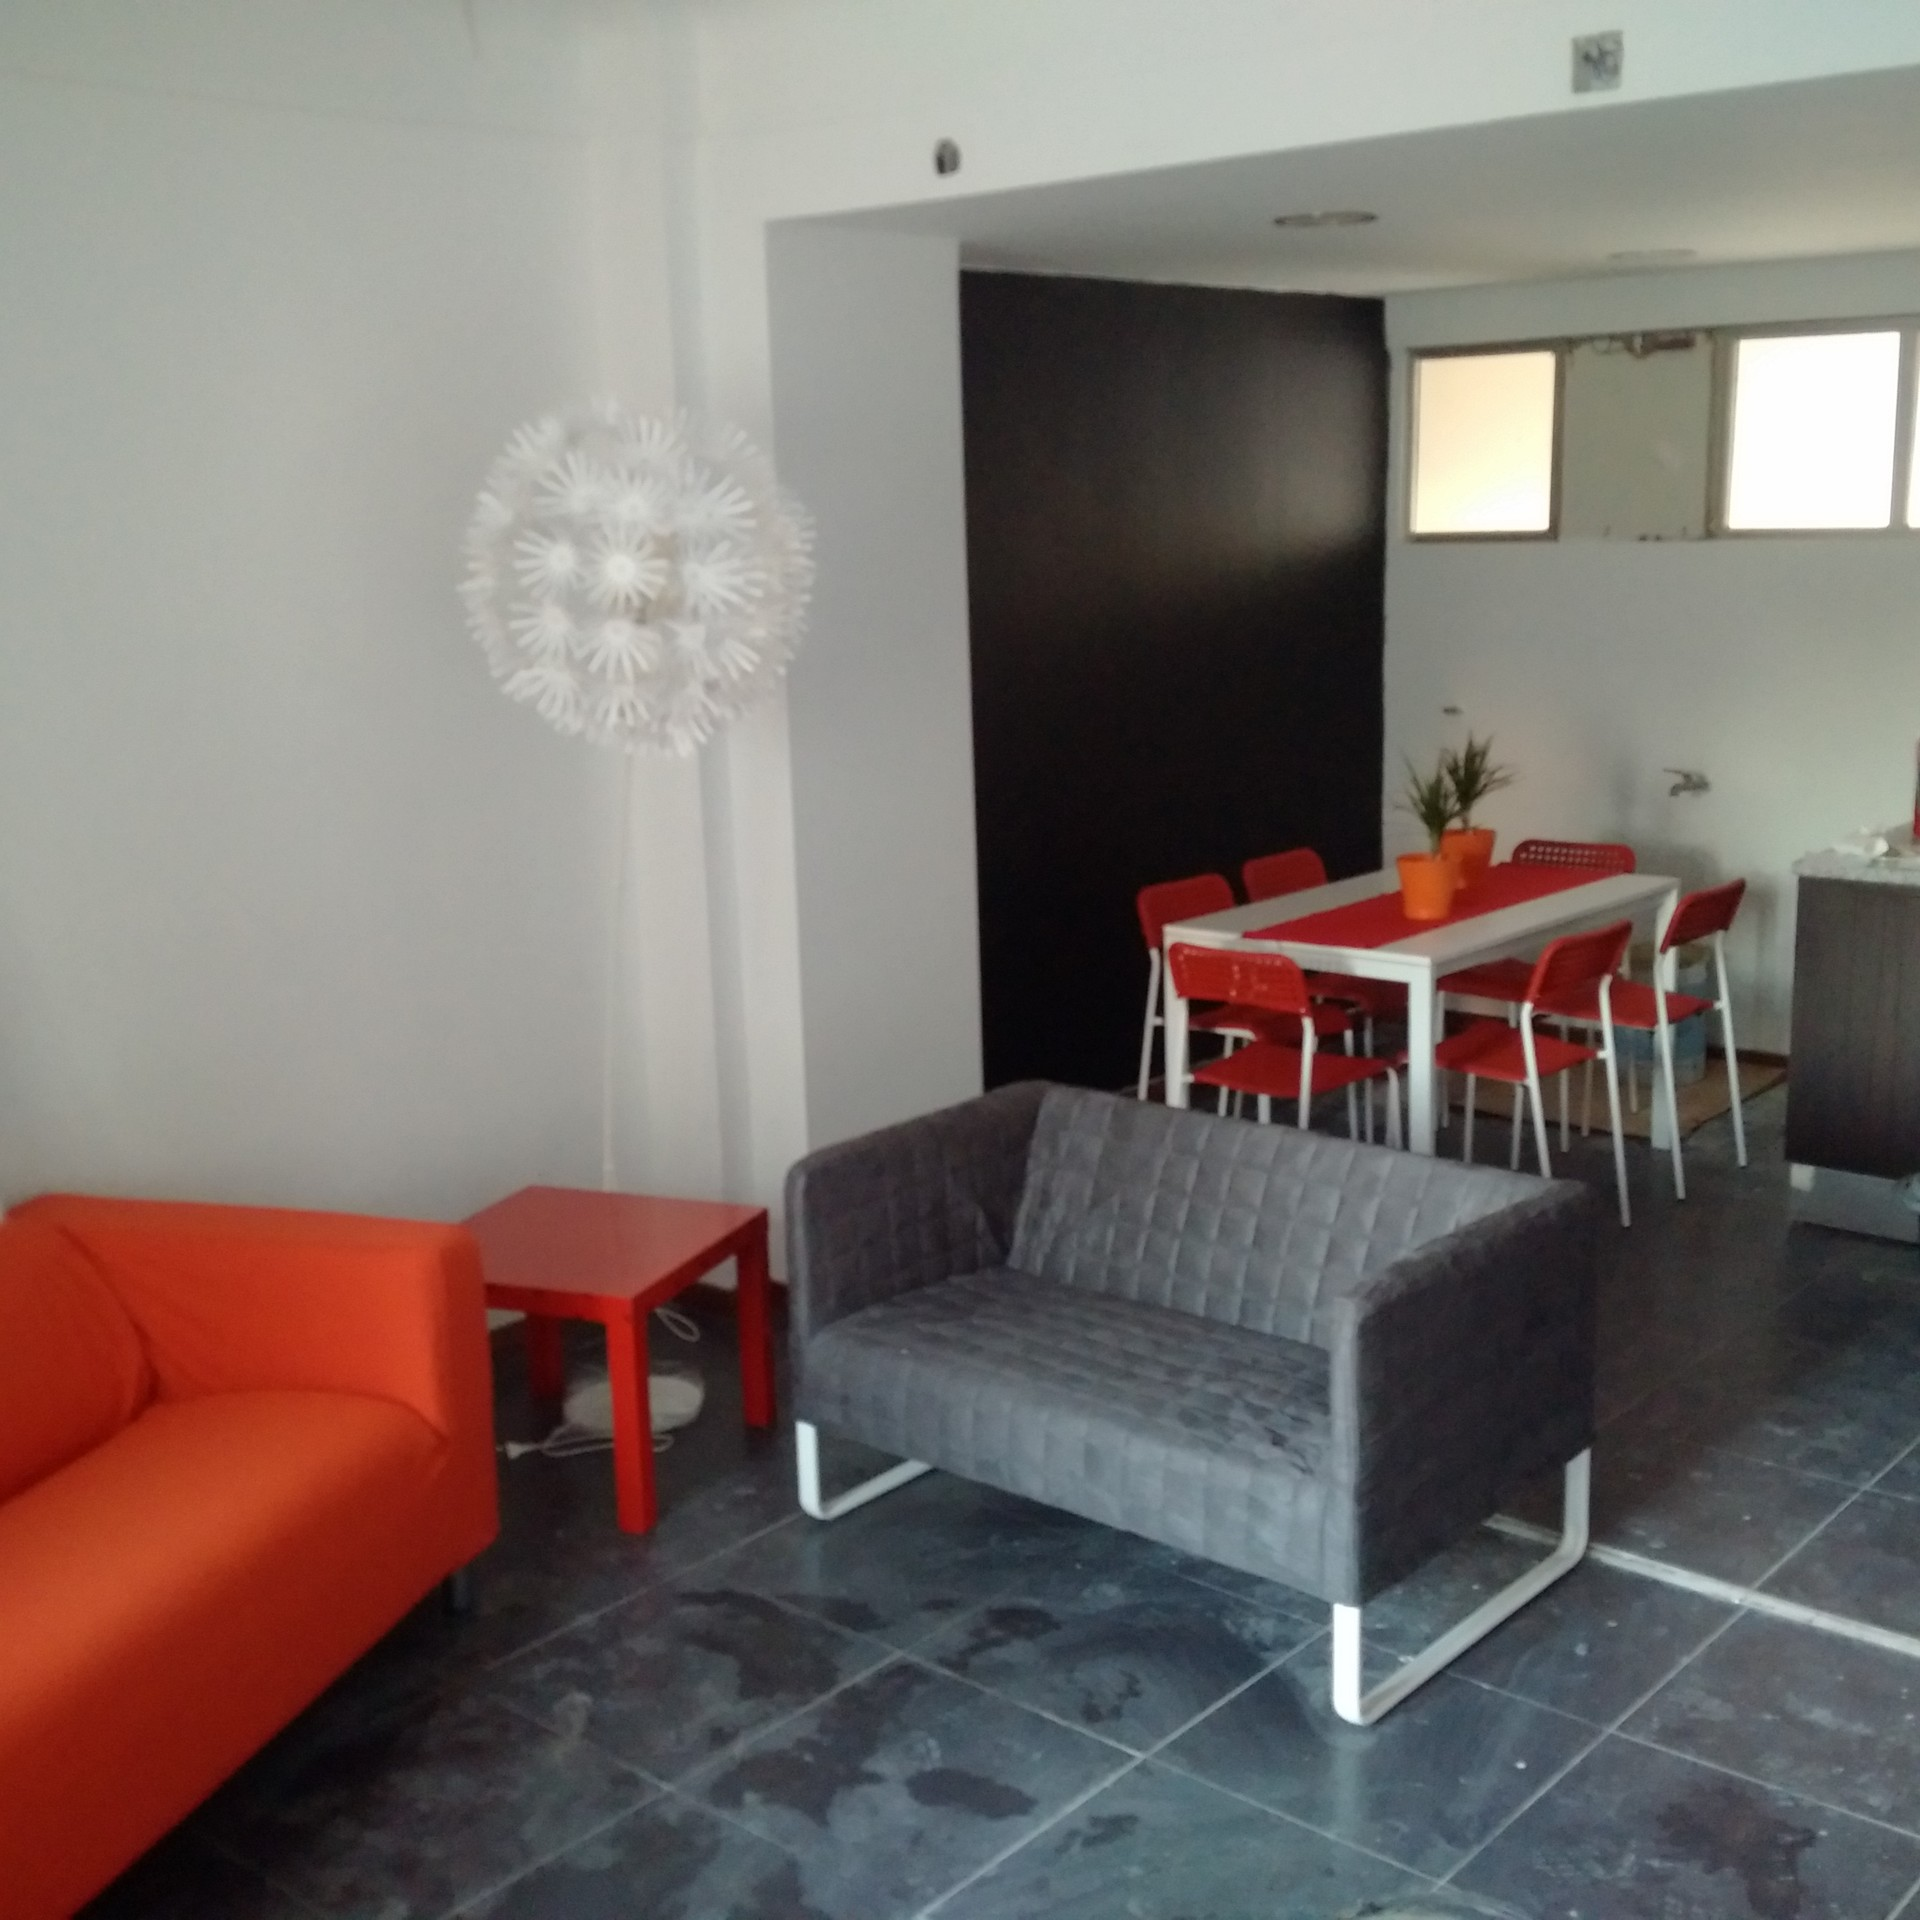 1 Bedroom Apartments Near Me: ROOMS AVAILABLE- Rooms In Apartment For Students. 6